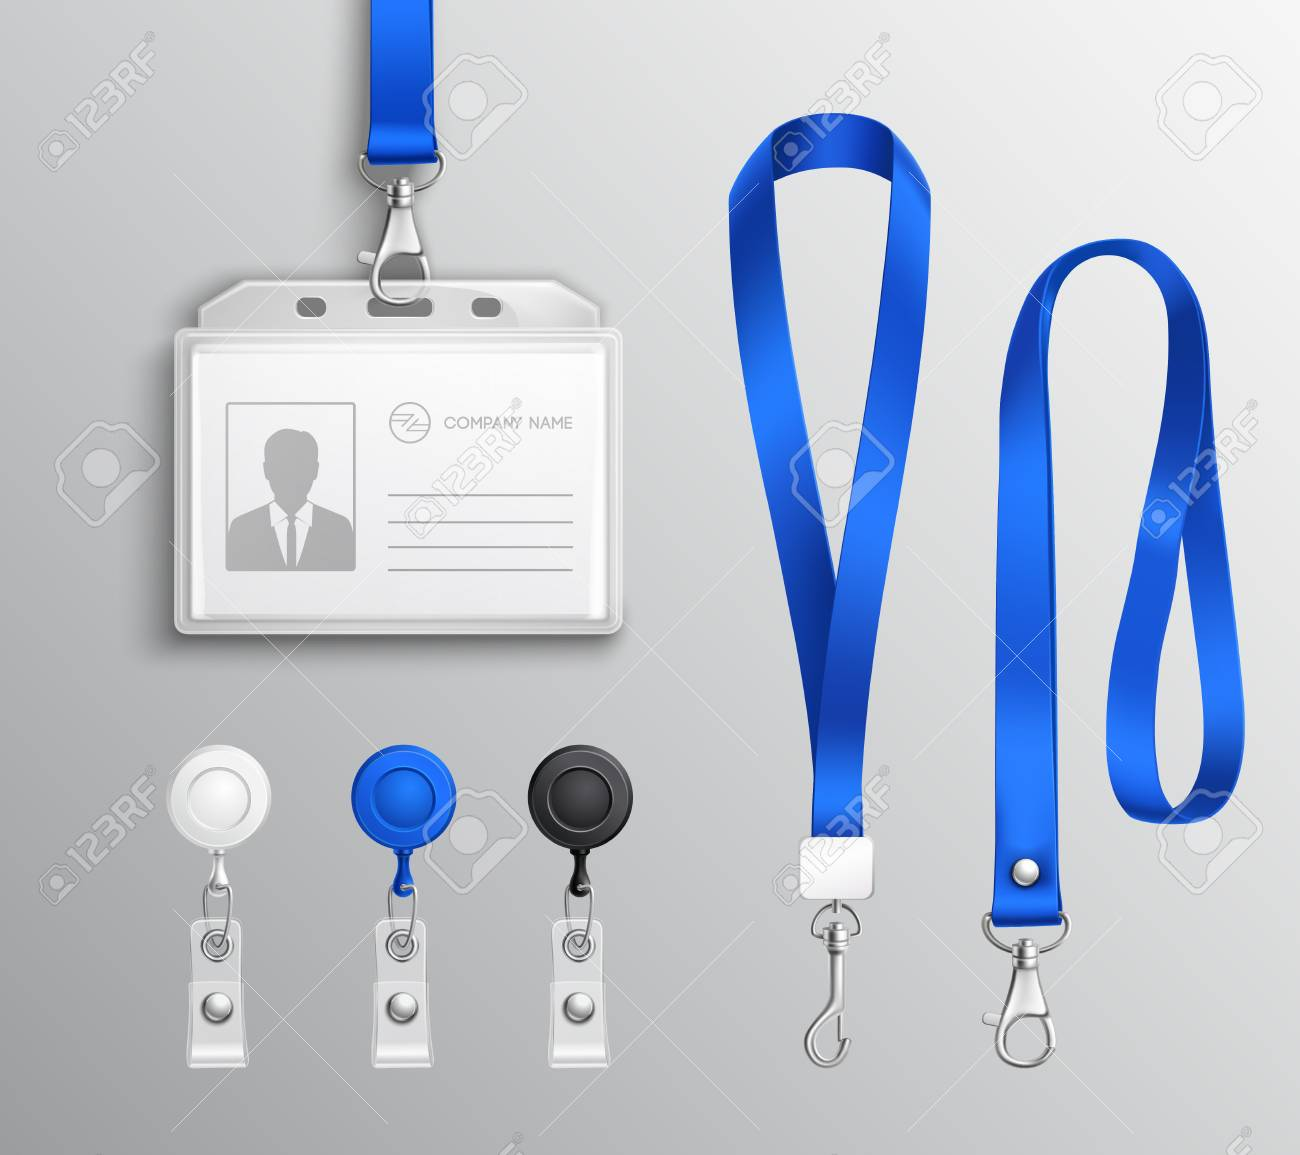 employees id card and badges holders with blue lanyards and strap